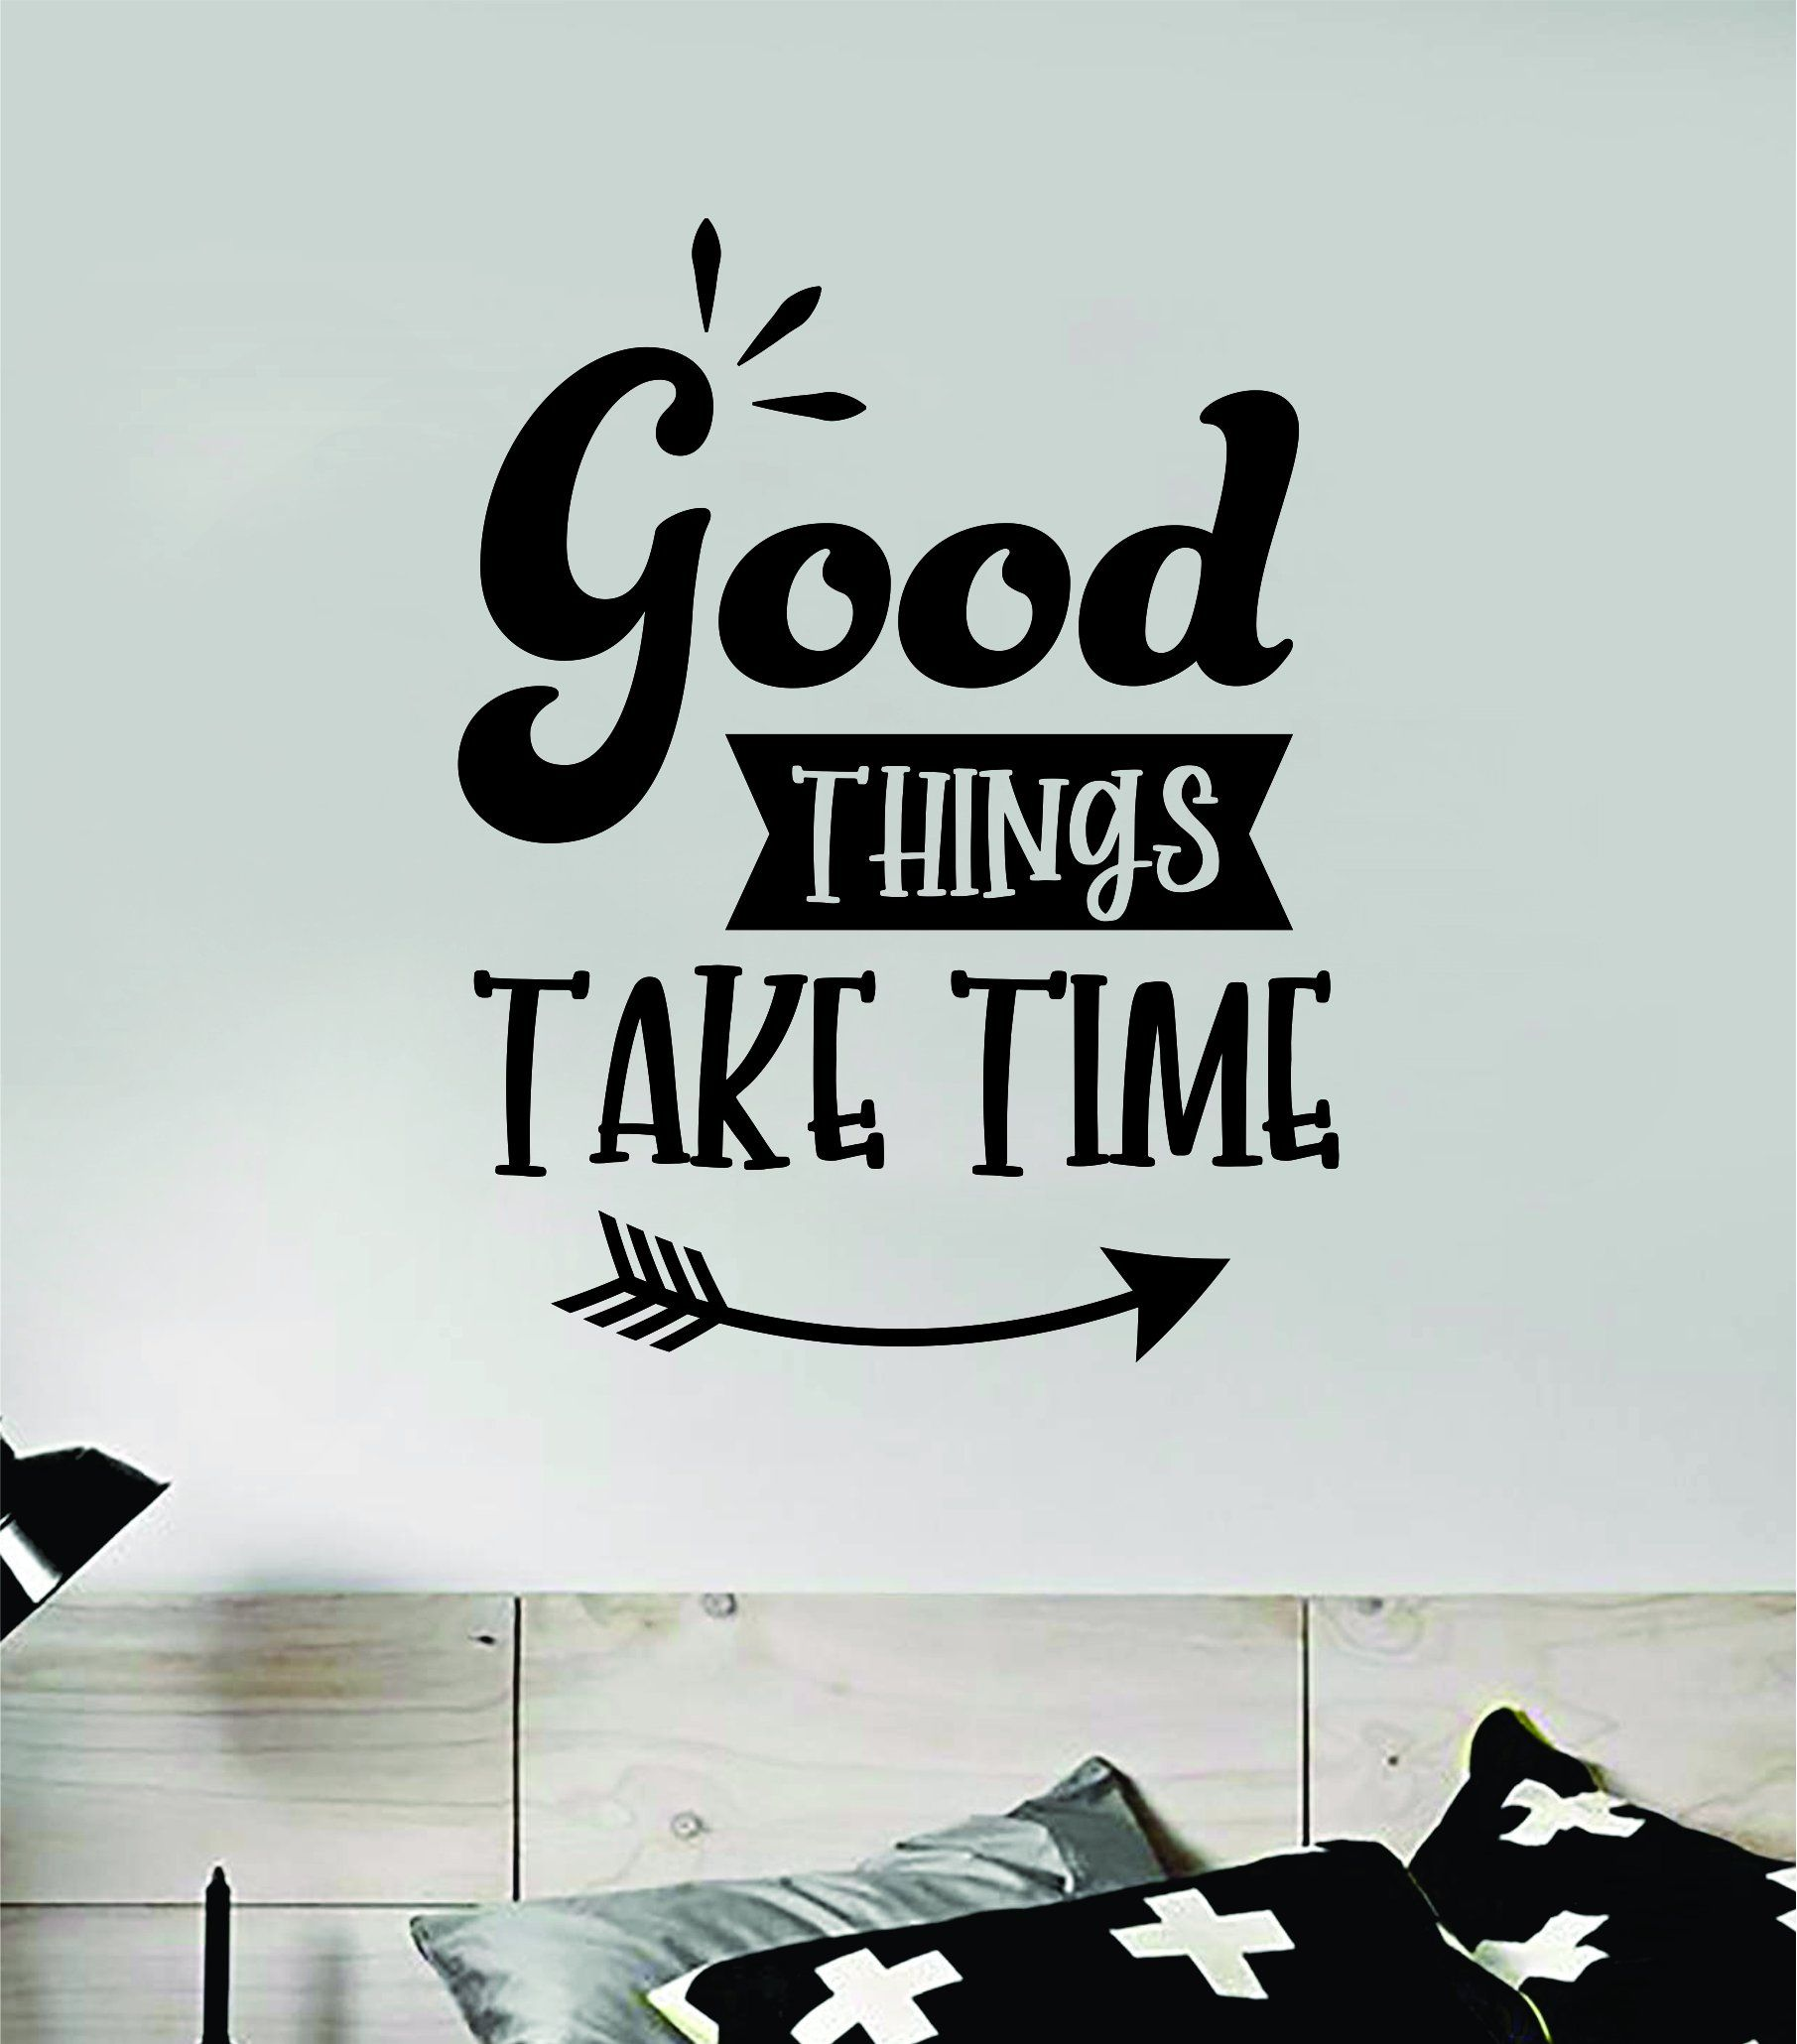 Good Things Take Time V3 Quote Wall Decal Sticker Vinyl Art Decor Bedroom Room Boy Girl Inspirational Motivational School Nursery Good Vibes - brown